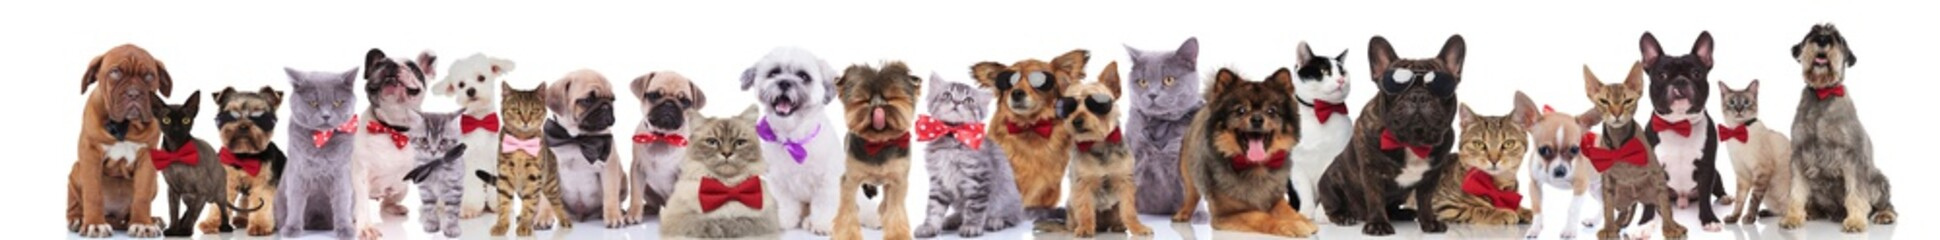 many cute cats and dogs wearing bowties and sunglasses